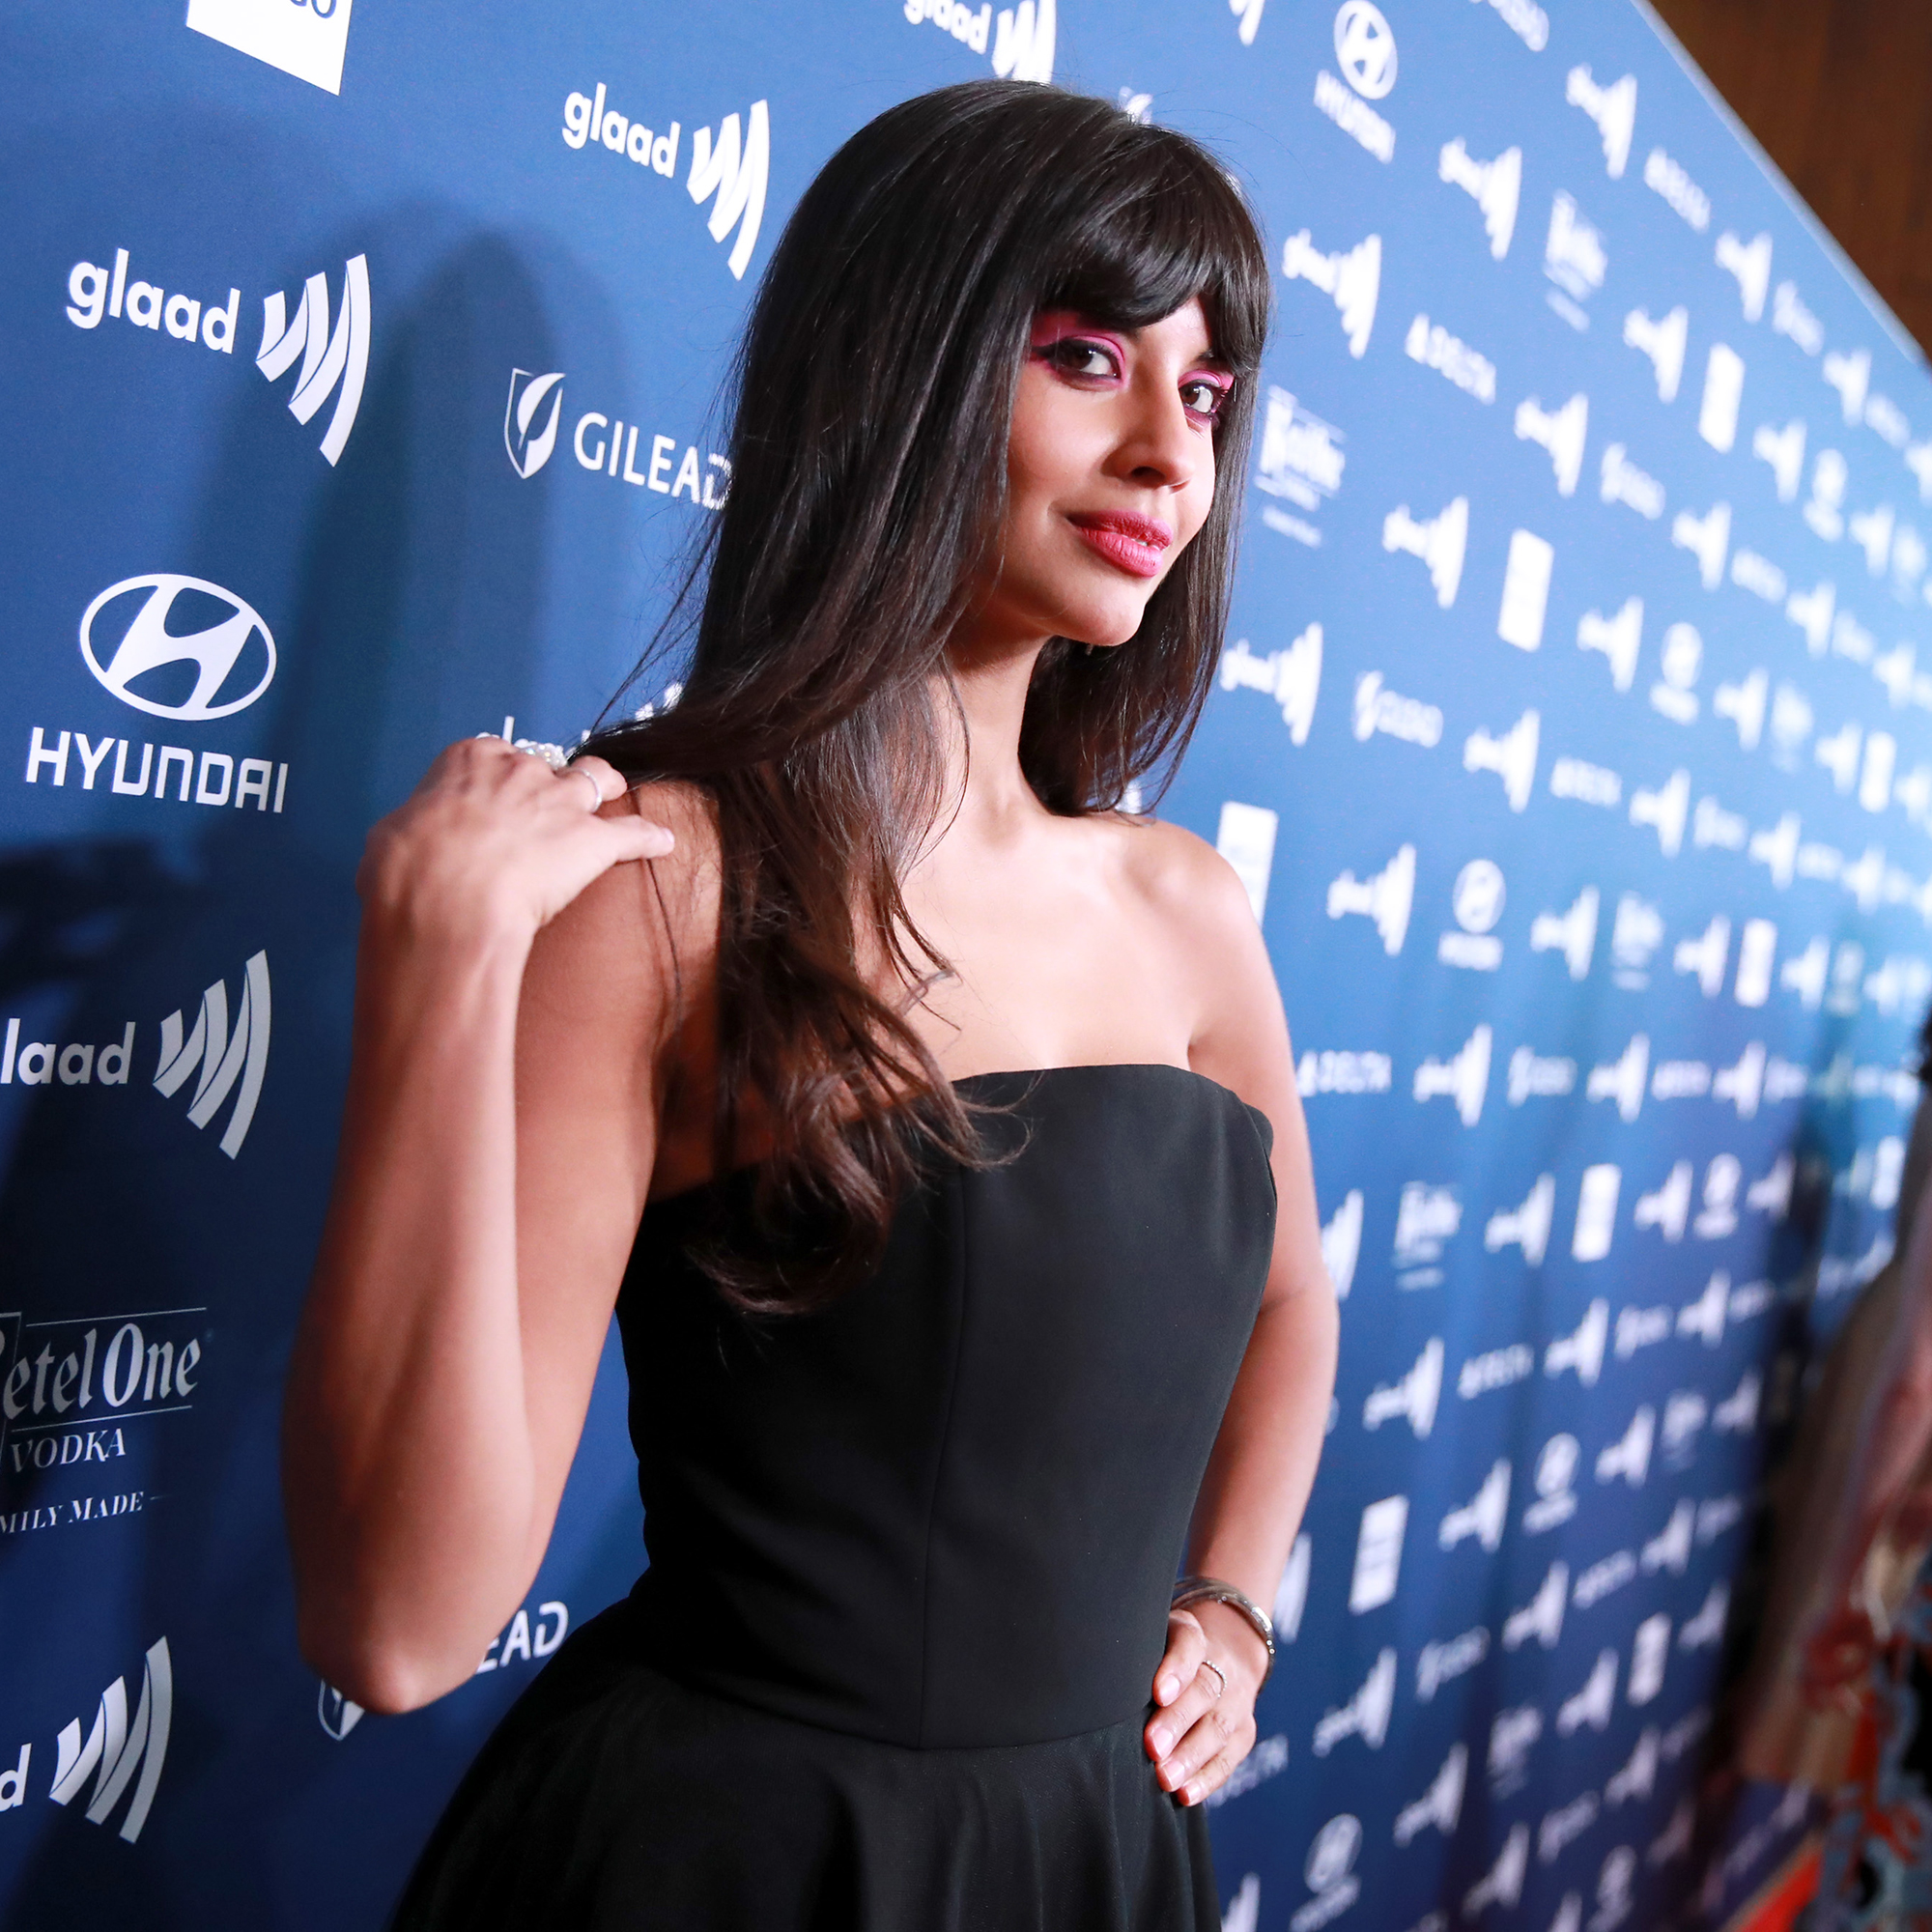 Everything Jameela Jamil Has Ever Said About Body-Shaming Culture - Jameela Jamil attends the 30th Annual GLAAD Media Awards Los Angeles at The Beverly Hilton Hotel on March 28, 2019 in Beverly Hills, California.